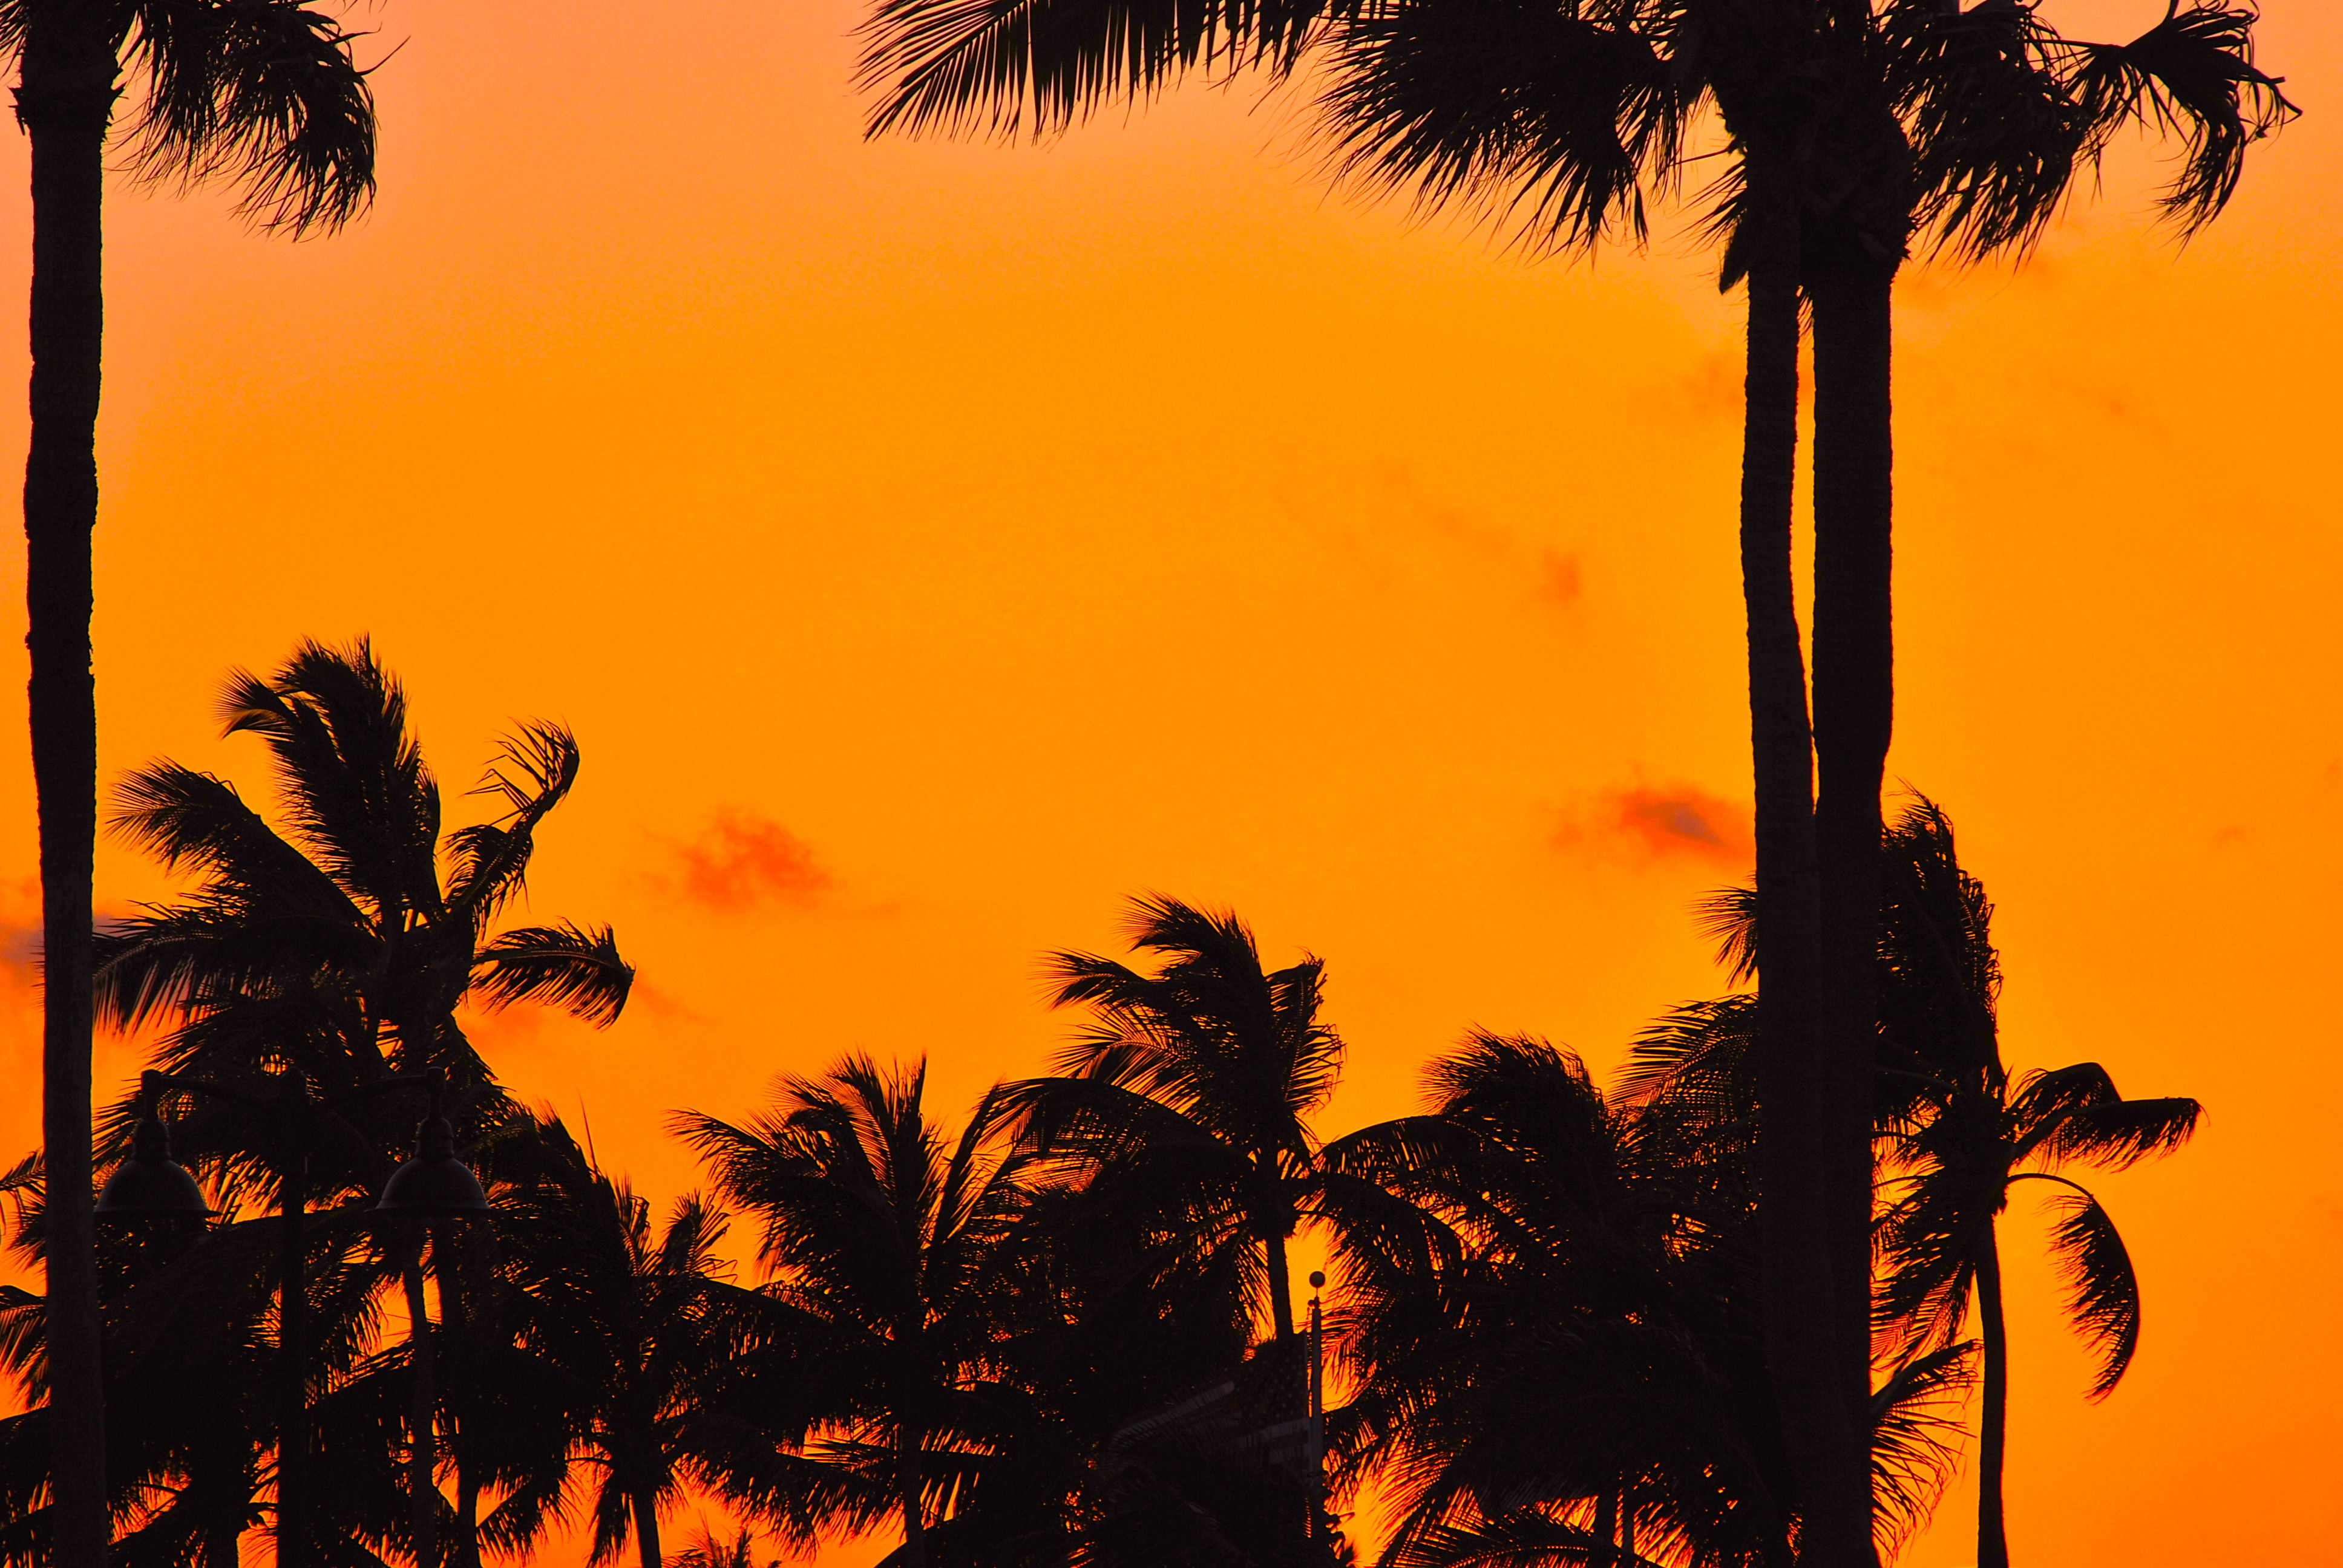 FilePalm Trees At Sunset In Fort LauderdaleJPG